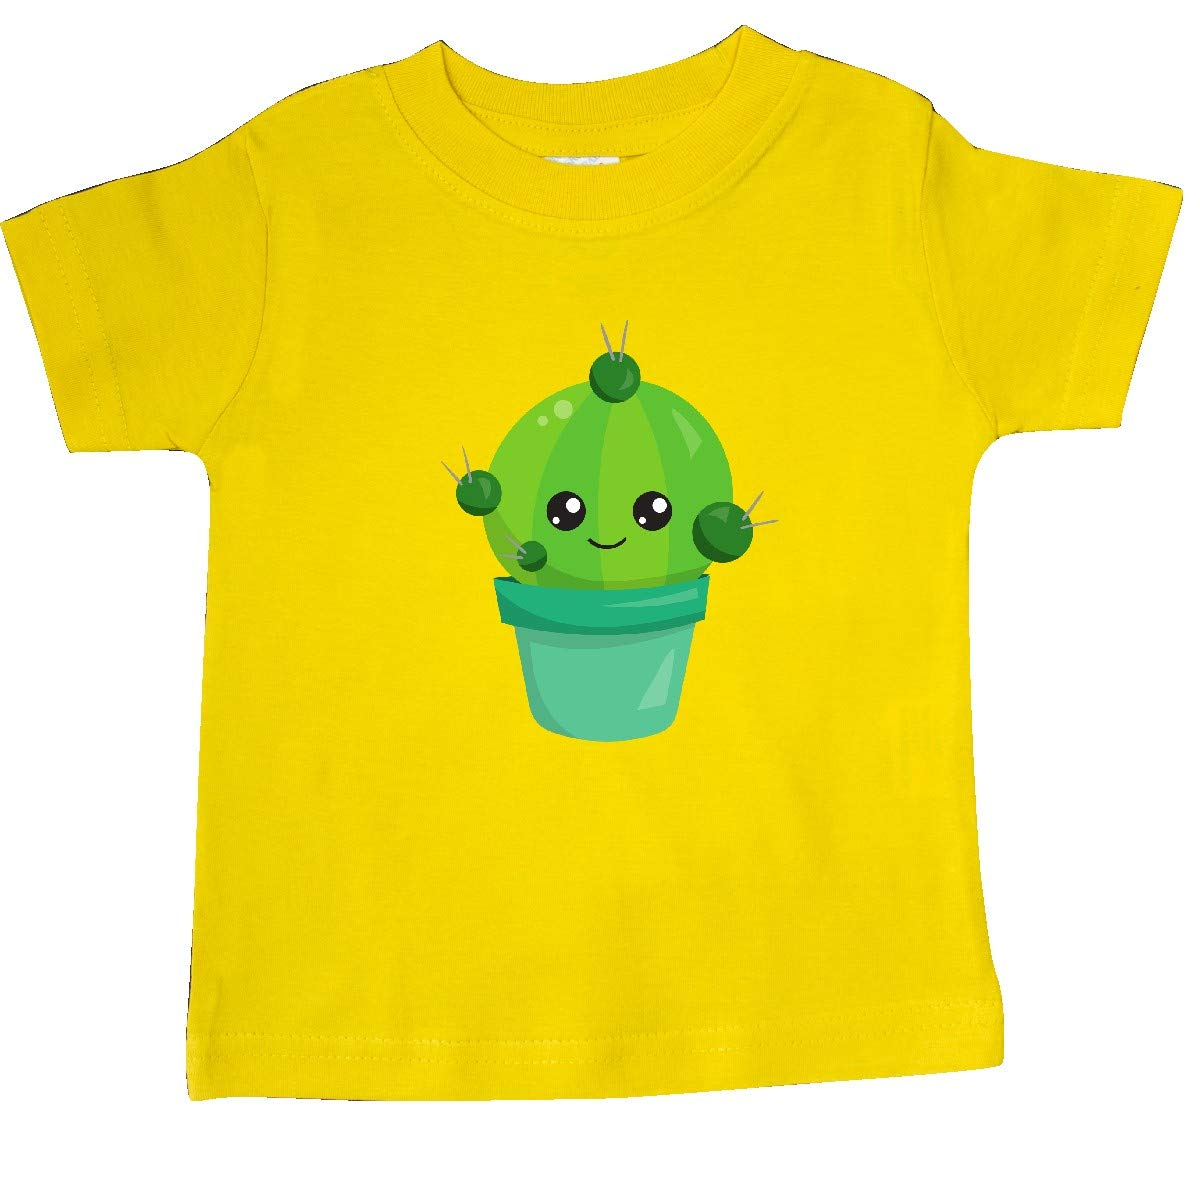 Smiling Cactus Baby T-Shirt inktastic Little Green Cactus in a Pot